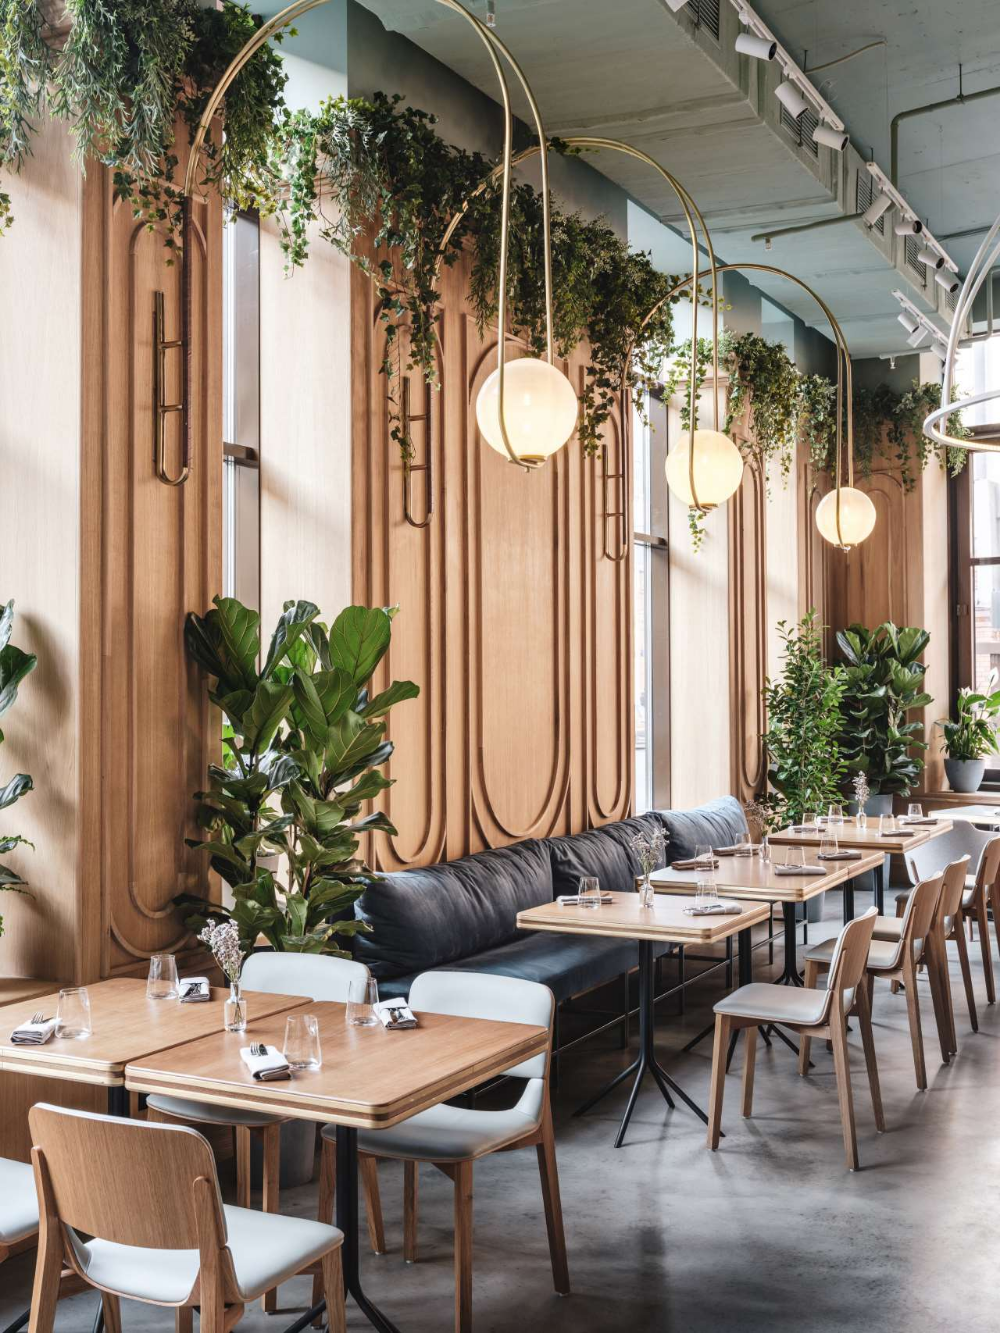 Moscow's 'The Y' Restaurant Embraces Millennials in Nostalgic Allure | Yatzer